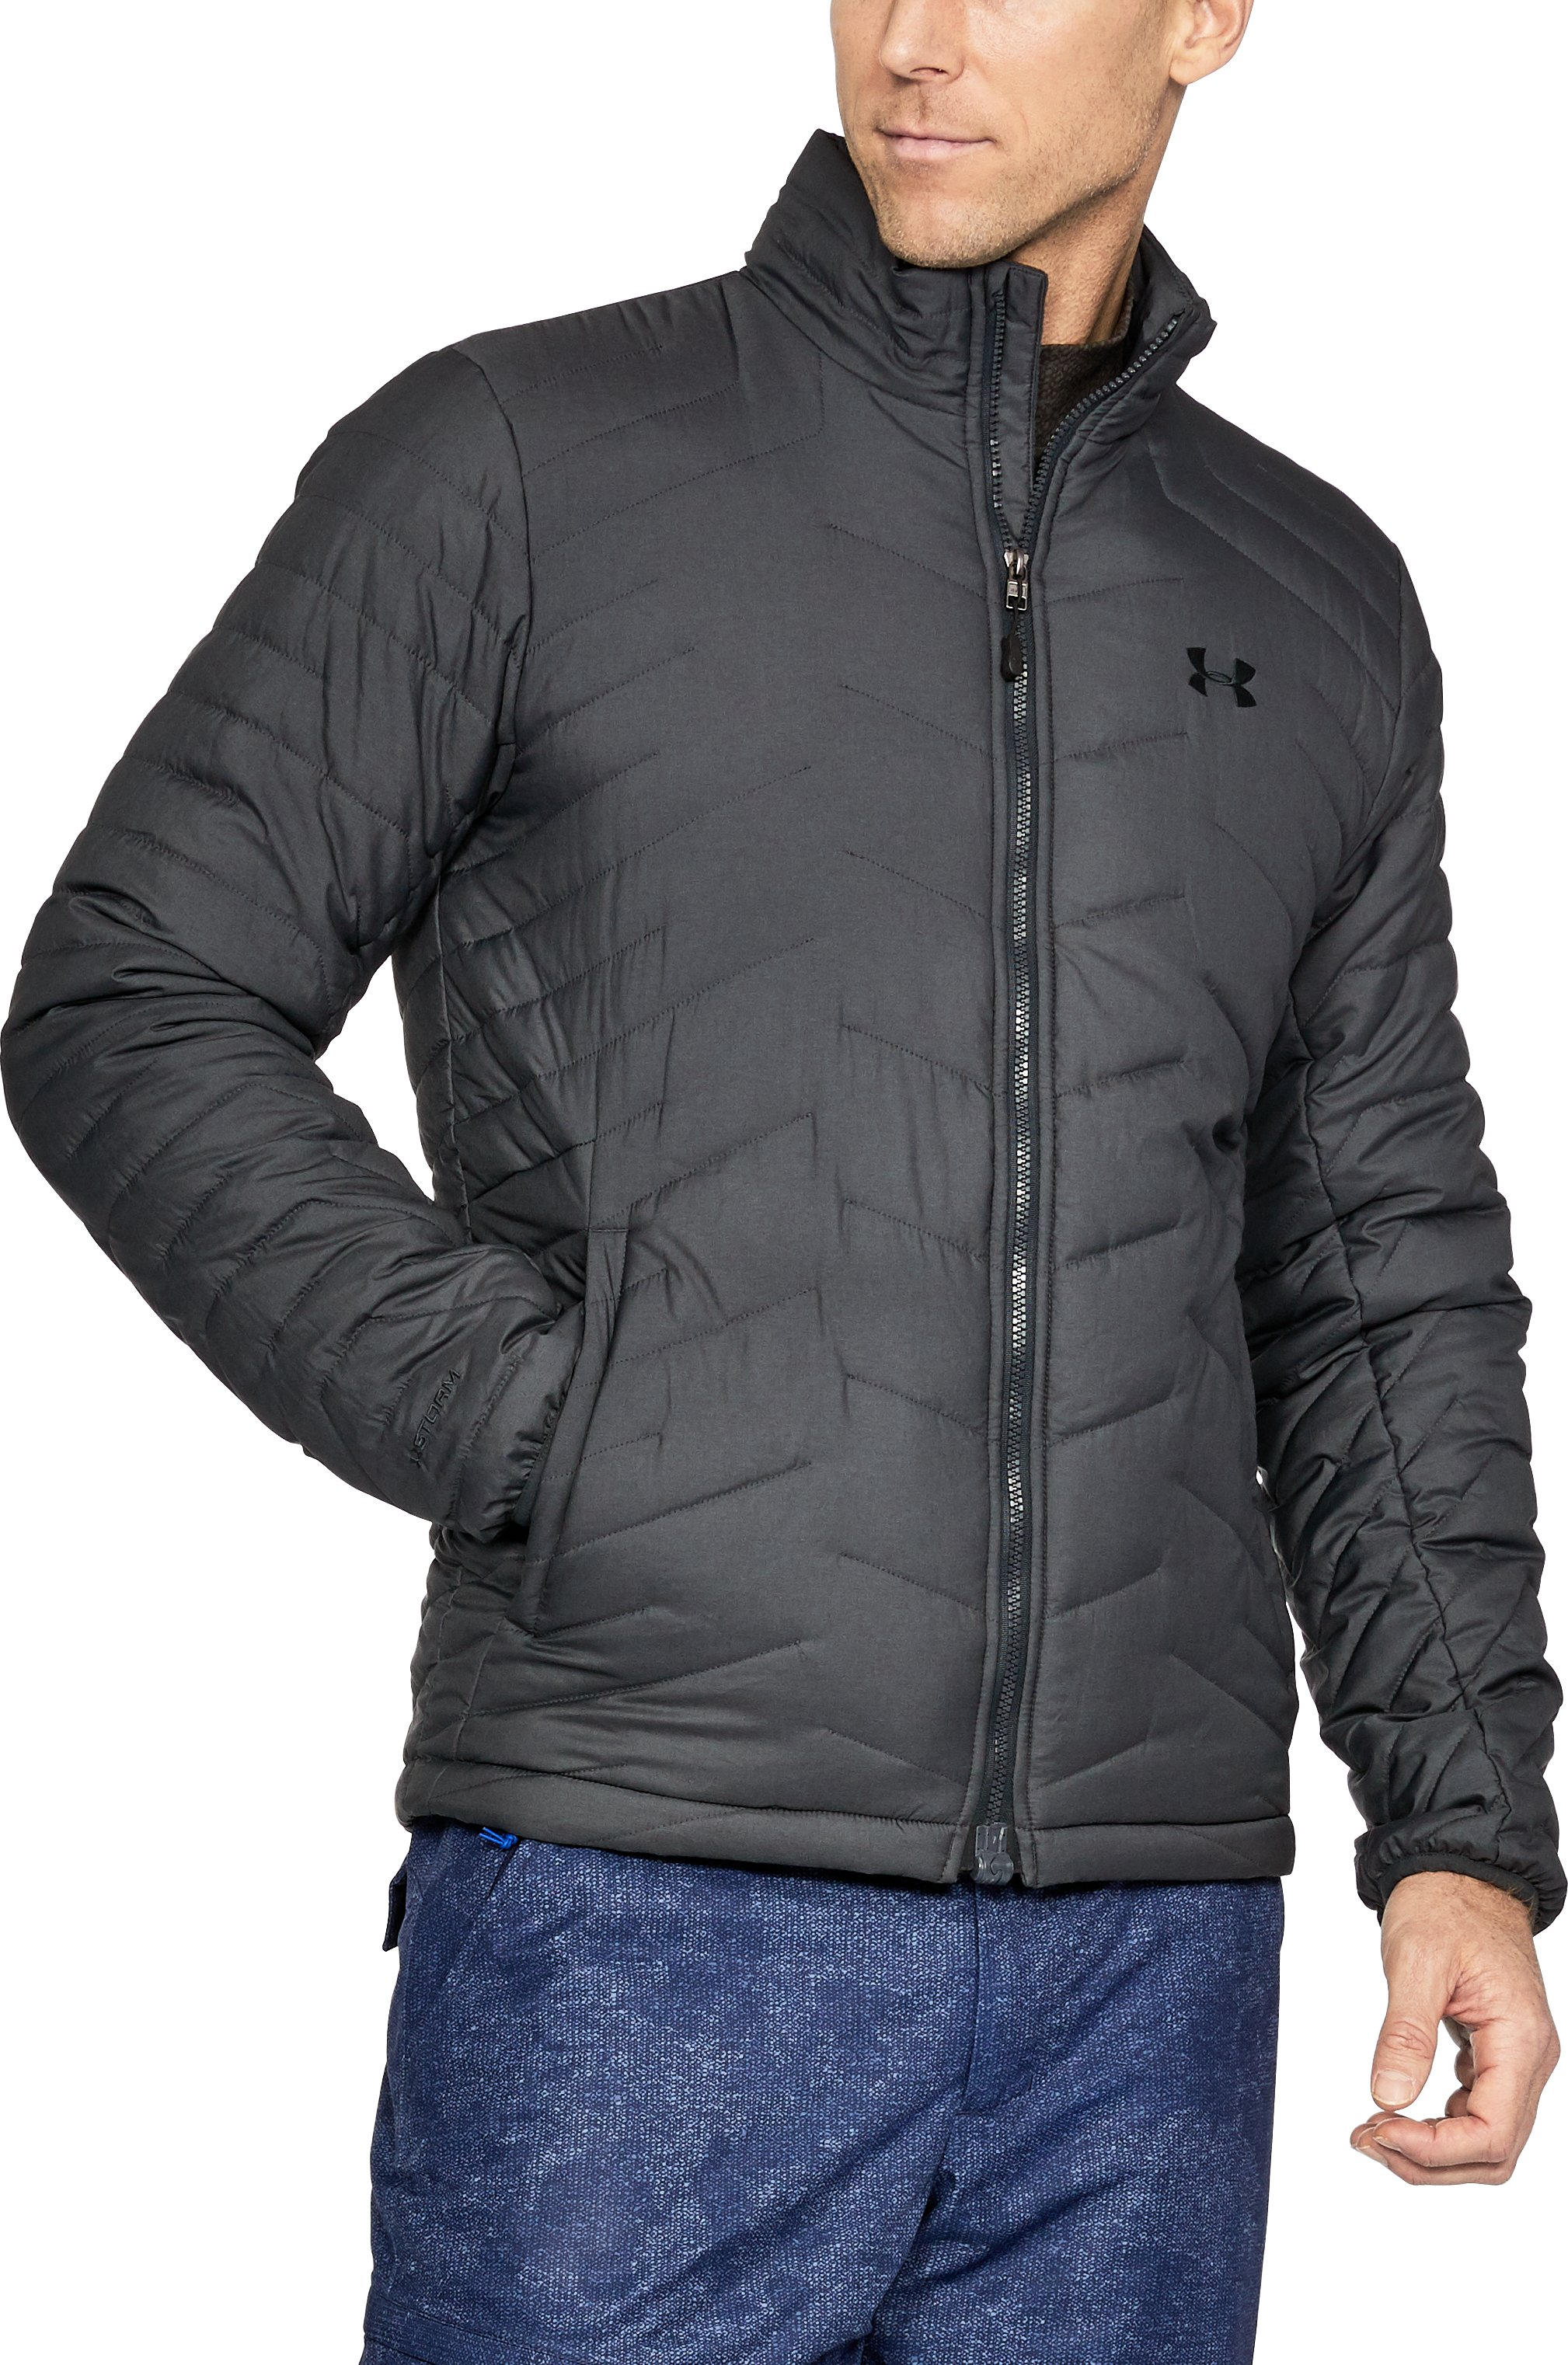 Men's ColdGear® Reactor Jacket, Carbon Heather